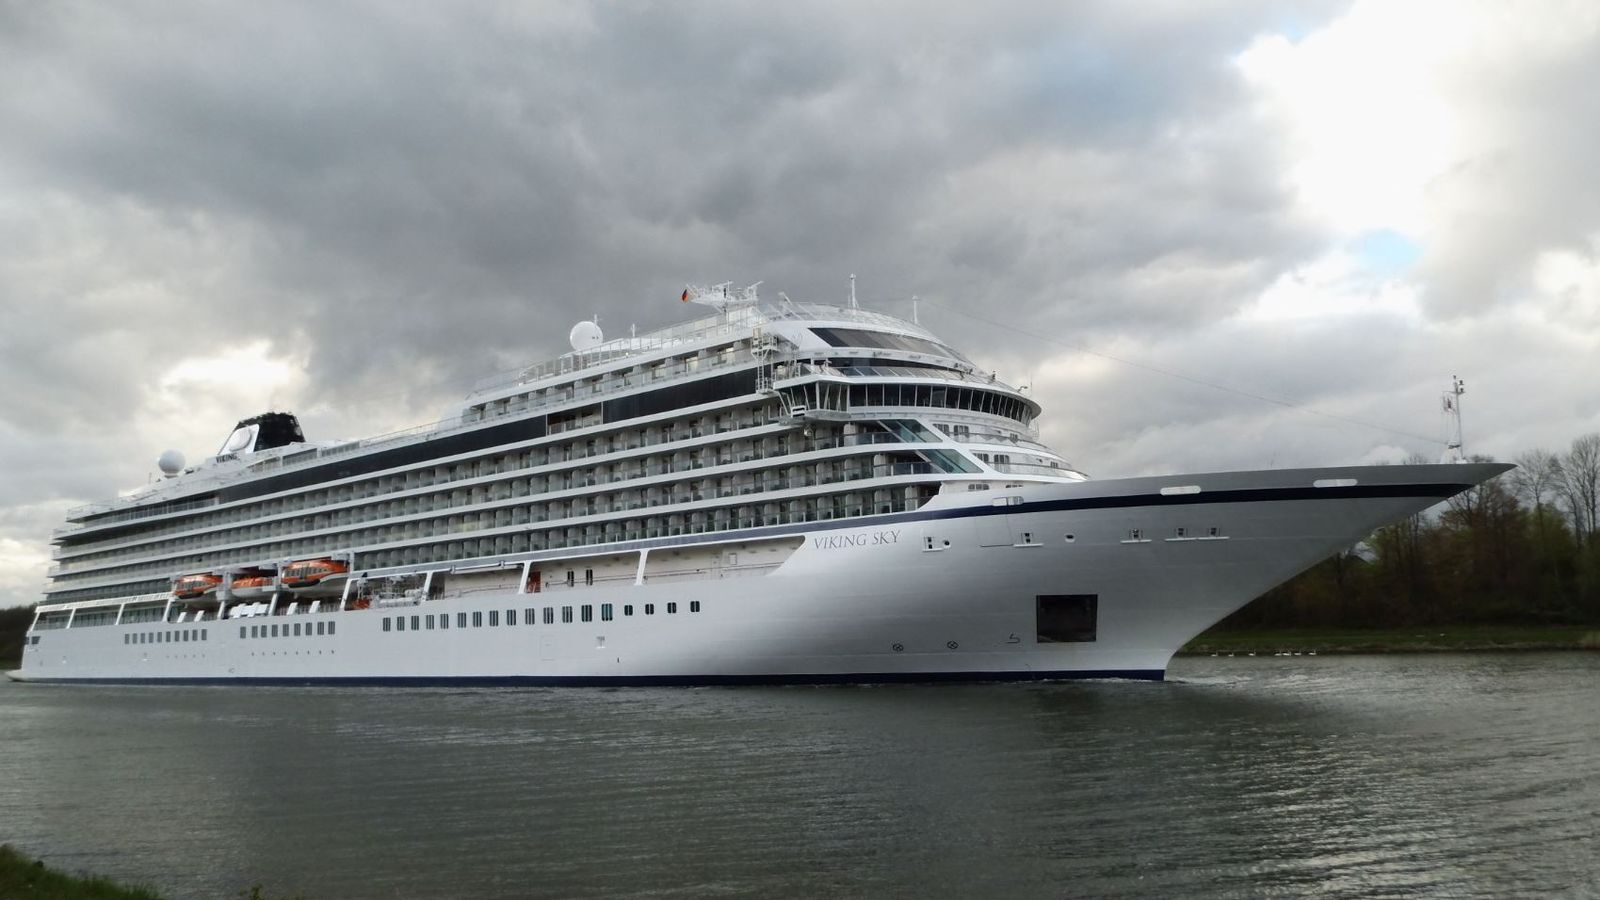 1,300 cruise ship passengers to be evacuated after engine failure